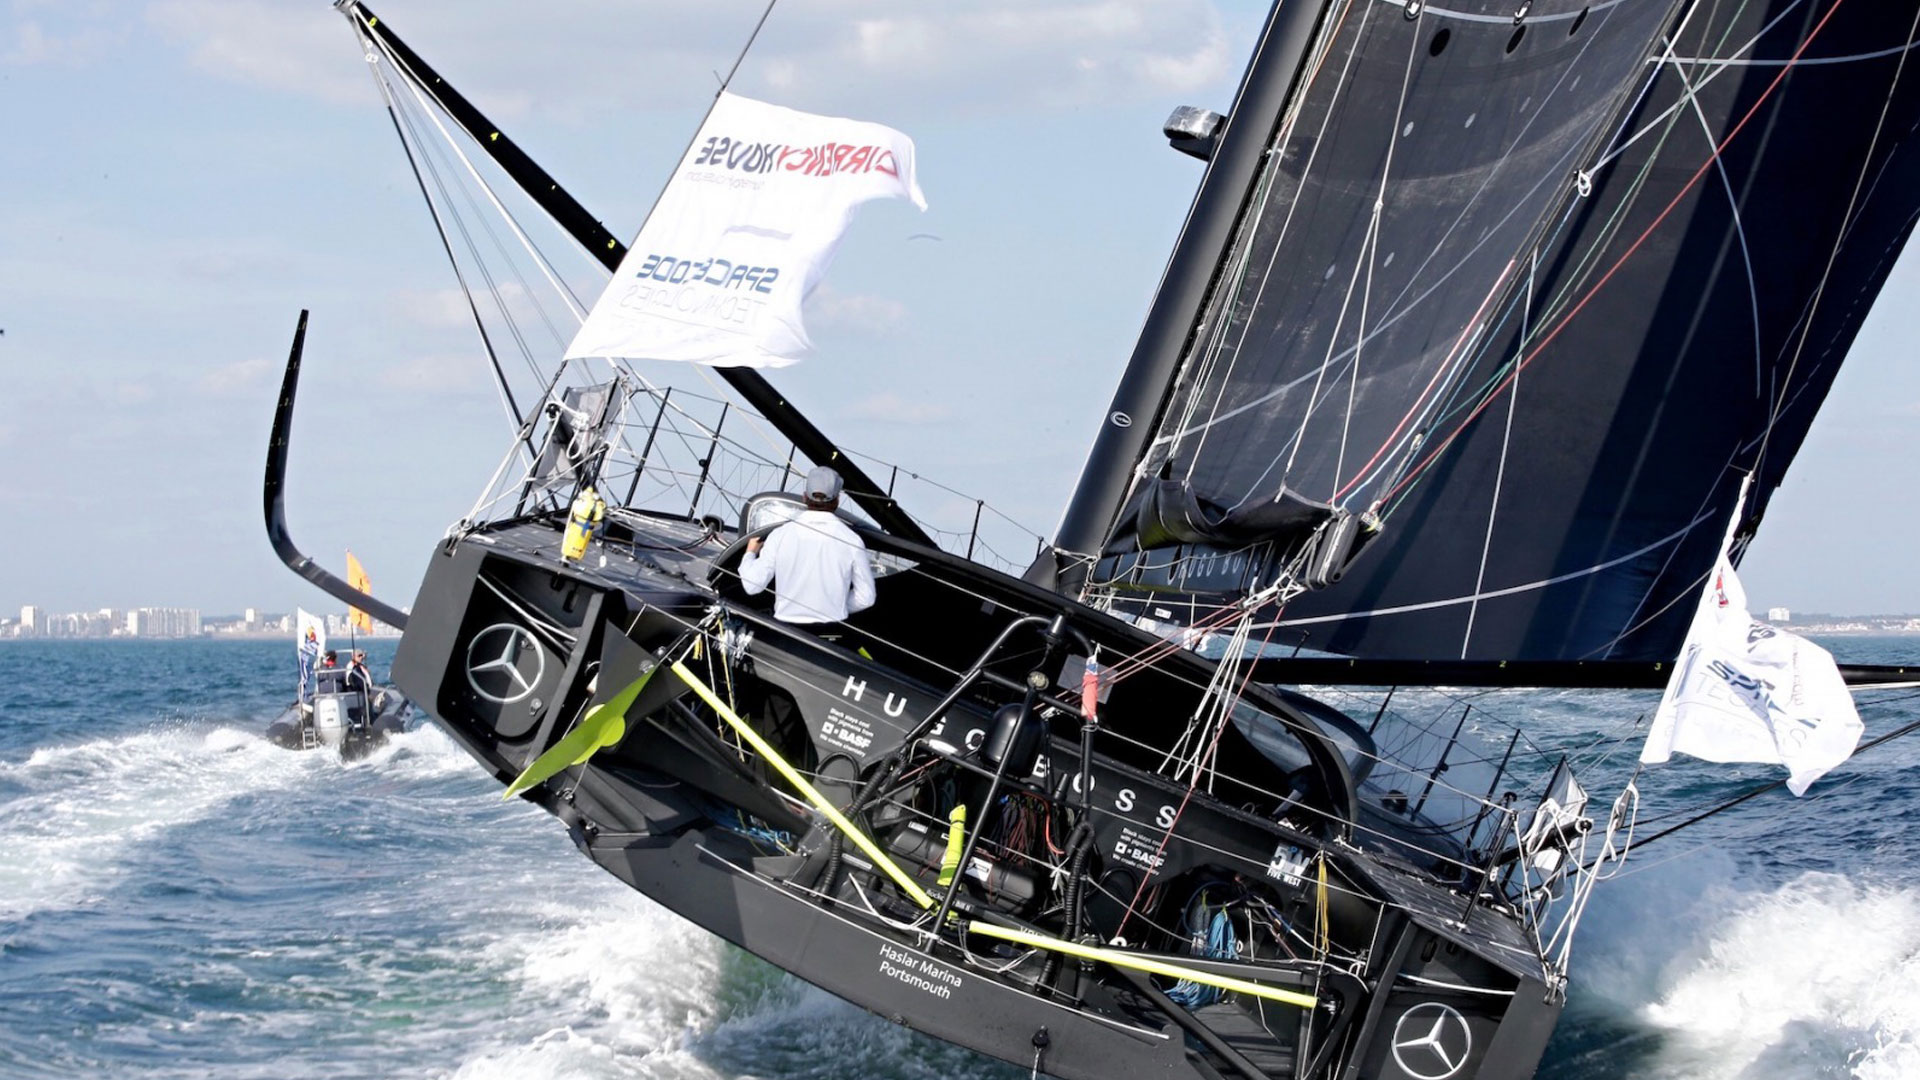 DREAM RACER BOATS DreamRacerBoats-BateauDeCourses Nos Yachts